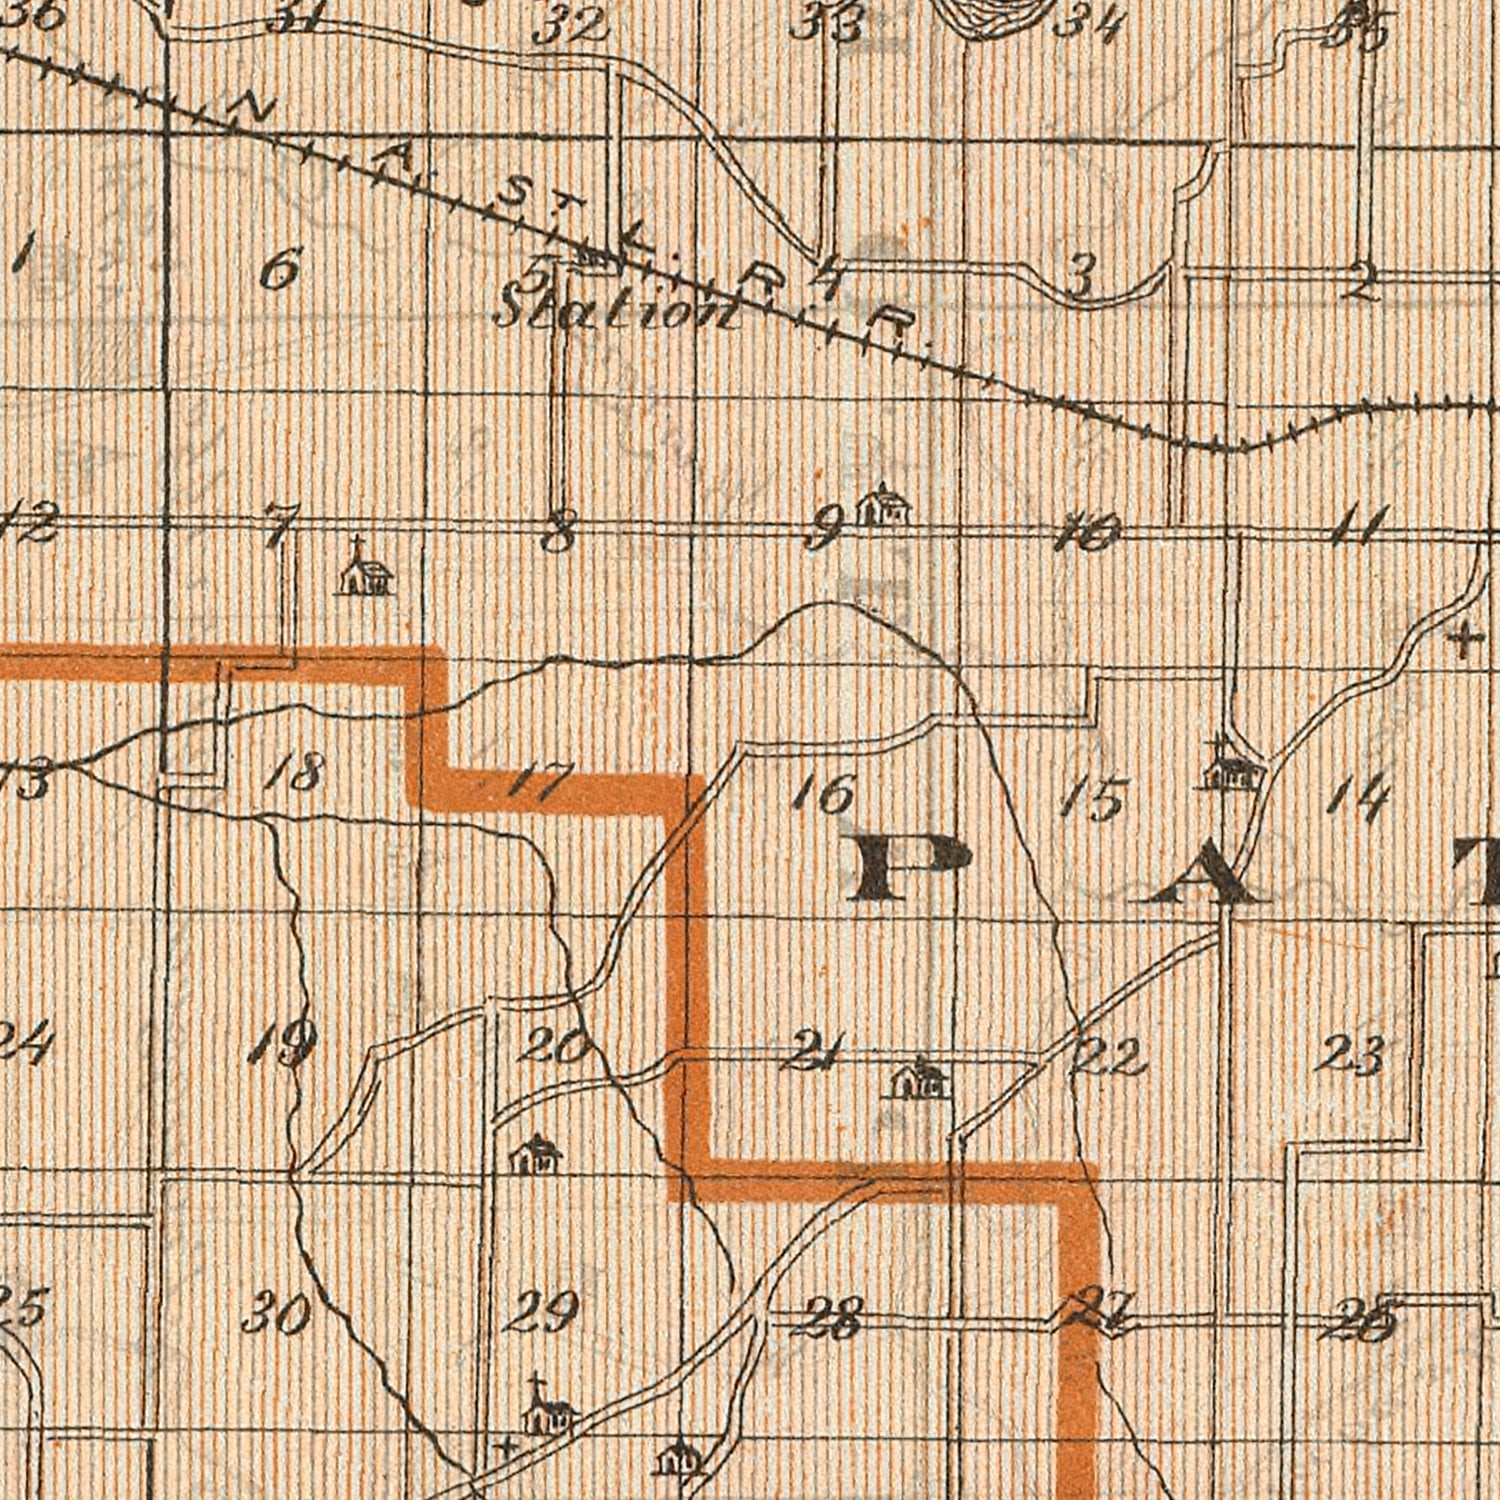 Vintage Map of Gibson County Indiana, 1876